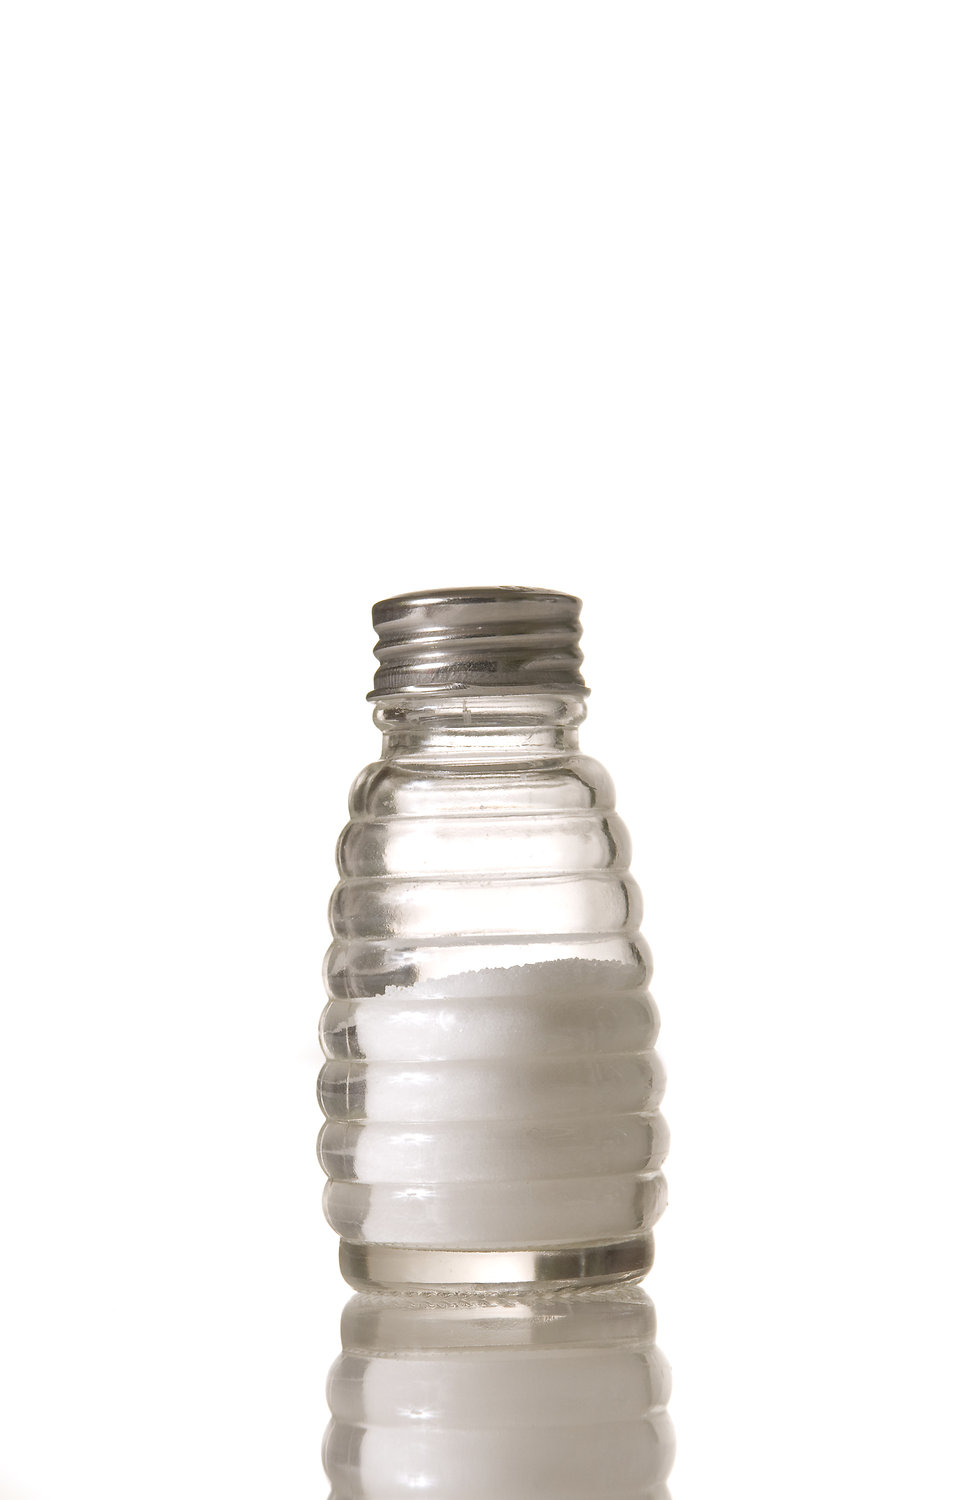 A glass salt shaker : Free Stock Photo